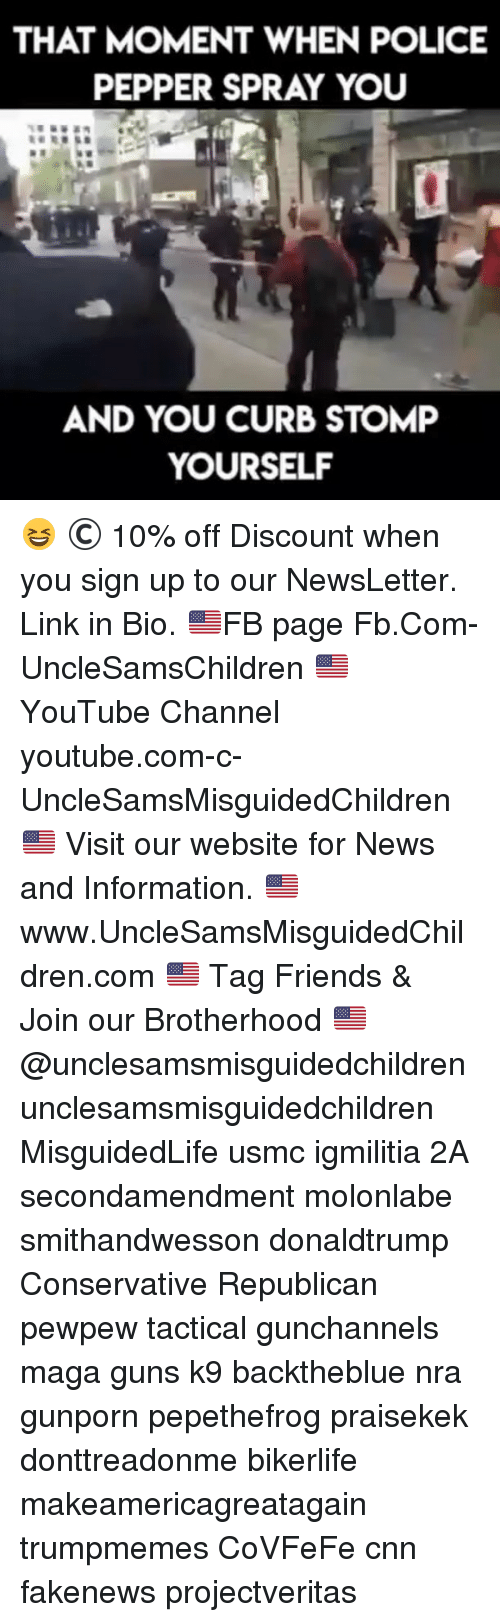 cnn.com, Friends, and Guns: THAT MOMENT WHEN POLICE  PEPPER SPRAY YOU  AND YOU CURB STOMP  YOURSELF 😆 © 10% off Discount when you sign up to our NewsLetter. Link in Bio. 🇺🇸FB page Fb.Com-UncleSamsChildren 🇺🇸YouTube Channel youtube.com-c-UncleSamsMisguidedChildren 🇺🇸 Visit our website for News and Information. 🇺🇸 www.UncleSamsMisguidedChildren.com 🇺🇸 Tag Friends & Join our Brotherhood 🇺🇸 @unclesamsmisguidedchildren unclesamsmisguidedchildren MisguidedLife usmc igmilitia 2A secondamendment molonlabe smithandwesson donaldtrump Conservative Republican pewpew tactical gunchannels maga guns k9 backtheblue nra gunporn pepethefrog praisekek donttreadonme bikerlife makeamericagreatagain trumpmemes CoVFeFe cnn fakenews projectveritas